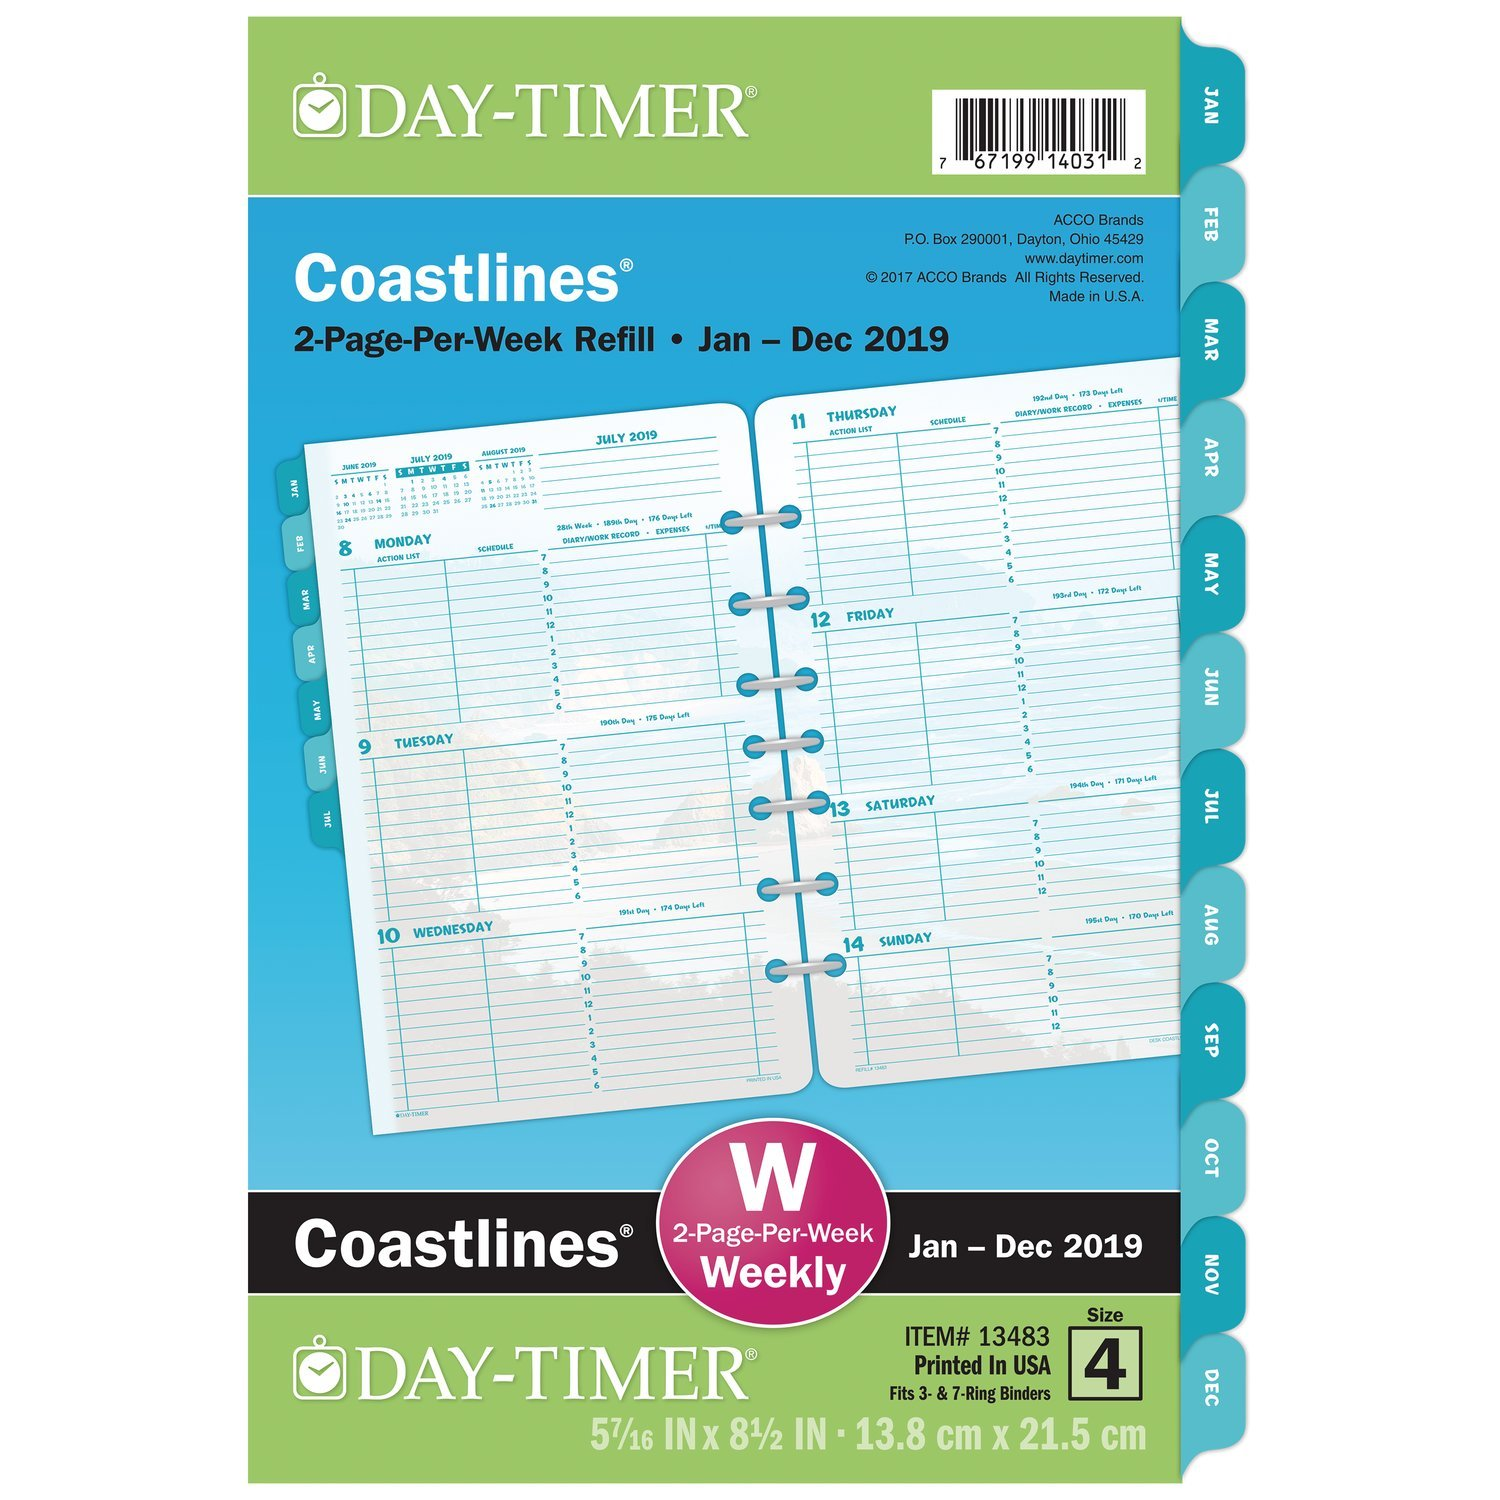 """Day-Timer 2019 Weekly Planner Refill, 5-1/2'' x 8-1/2"""", Desk Size 4, Loose Leaf, Two Pages Per Week, Coastlines (13483)"""